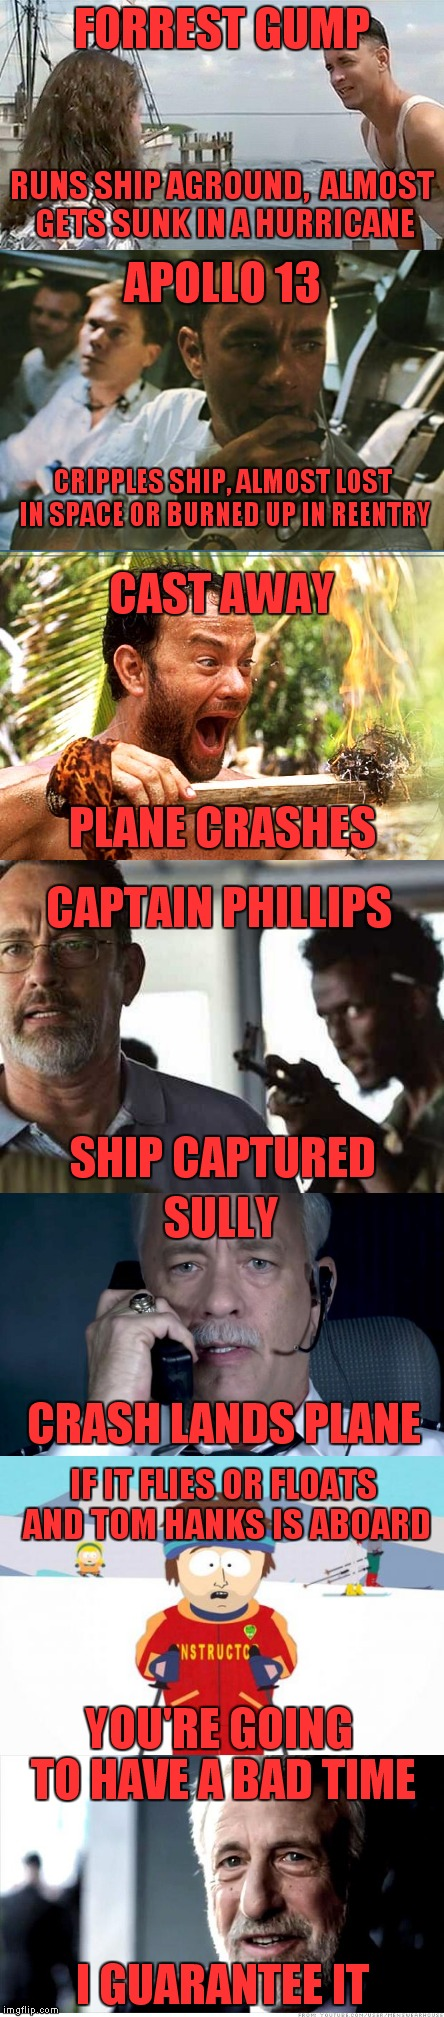 One of my favorite actors, but I wouldn't travel with him. |  FORREST GUMP; RUNS SHIP AGROUND,  ALMOST GETS SUNK IN A HURRICANE; APOLLO 13; CRIPPLES SHIP, ALMOST LOST IN SPACE OR BURNED UP IN REENTRY; CAST AWAY; PLANE CRASHES; CAPTAIN PHILLIPS; SHIP CAPTURED; SULLY; CRASH LANDS PLANE; IF IT FLIES OR FLOATS AND TOM HANKS IS ABOARD; YOU'RE GOING TO HAVE A BAD TIME; I GUARANTEE IT | image tagged in tom hanks,forrest gump,apollo 13,cast away,captain phillips,sully | made w/ Imgflip meme maker